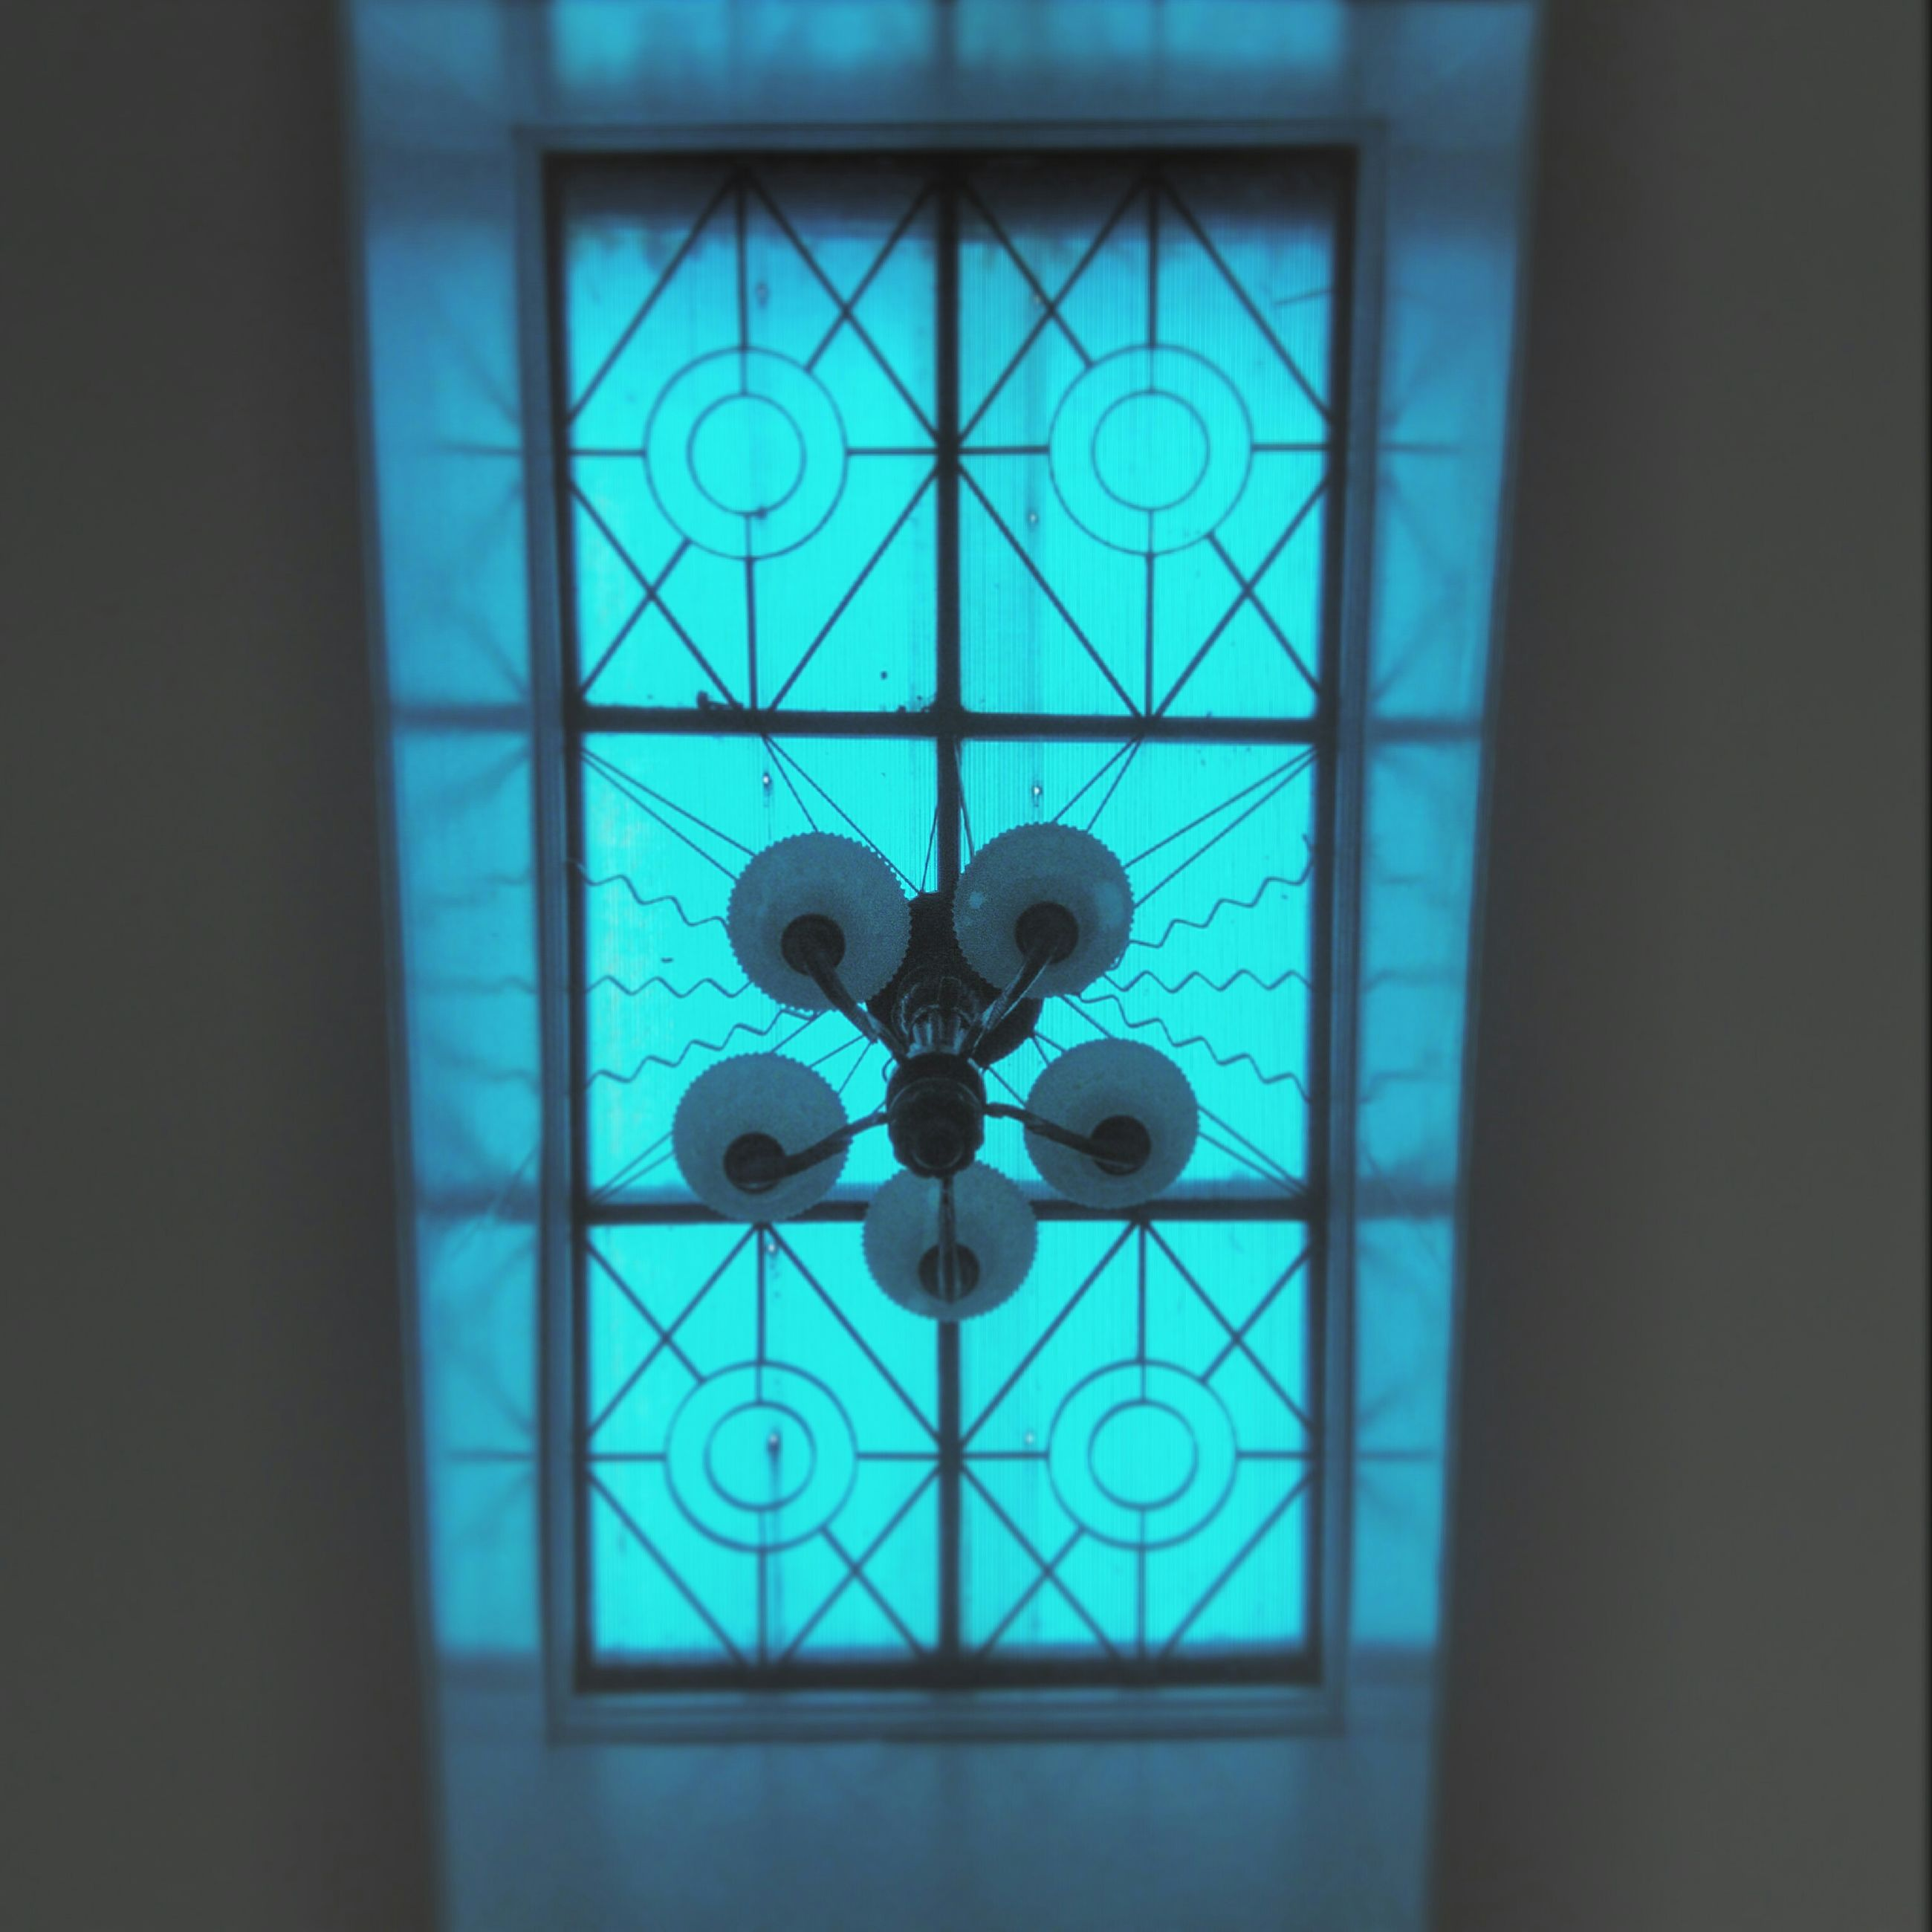 indoors, window, glass - material, geometric shape, transparent, circle, pattern, architecture, built structure, home interior, blue, design, reflection, no people, shape, decoration, day, close-up, ceiling, house